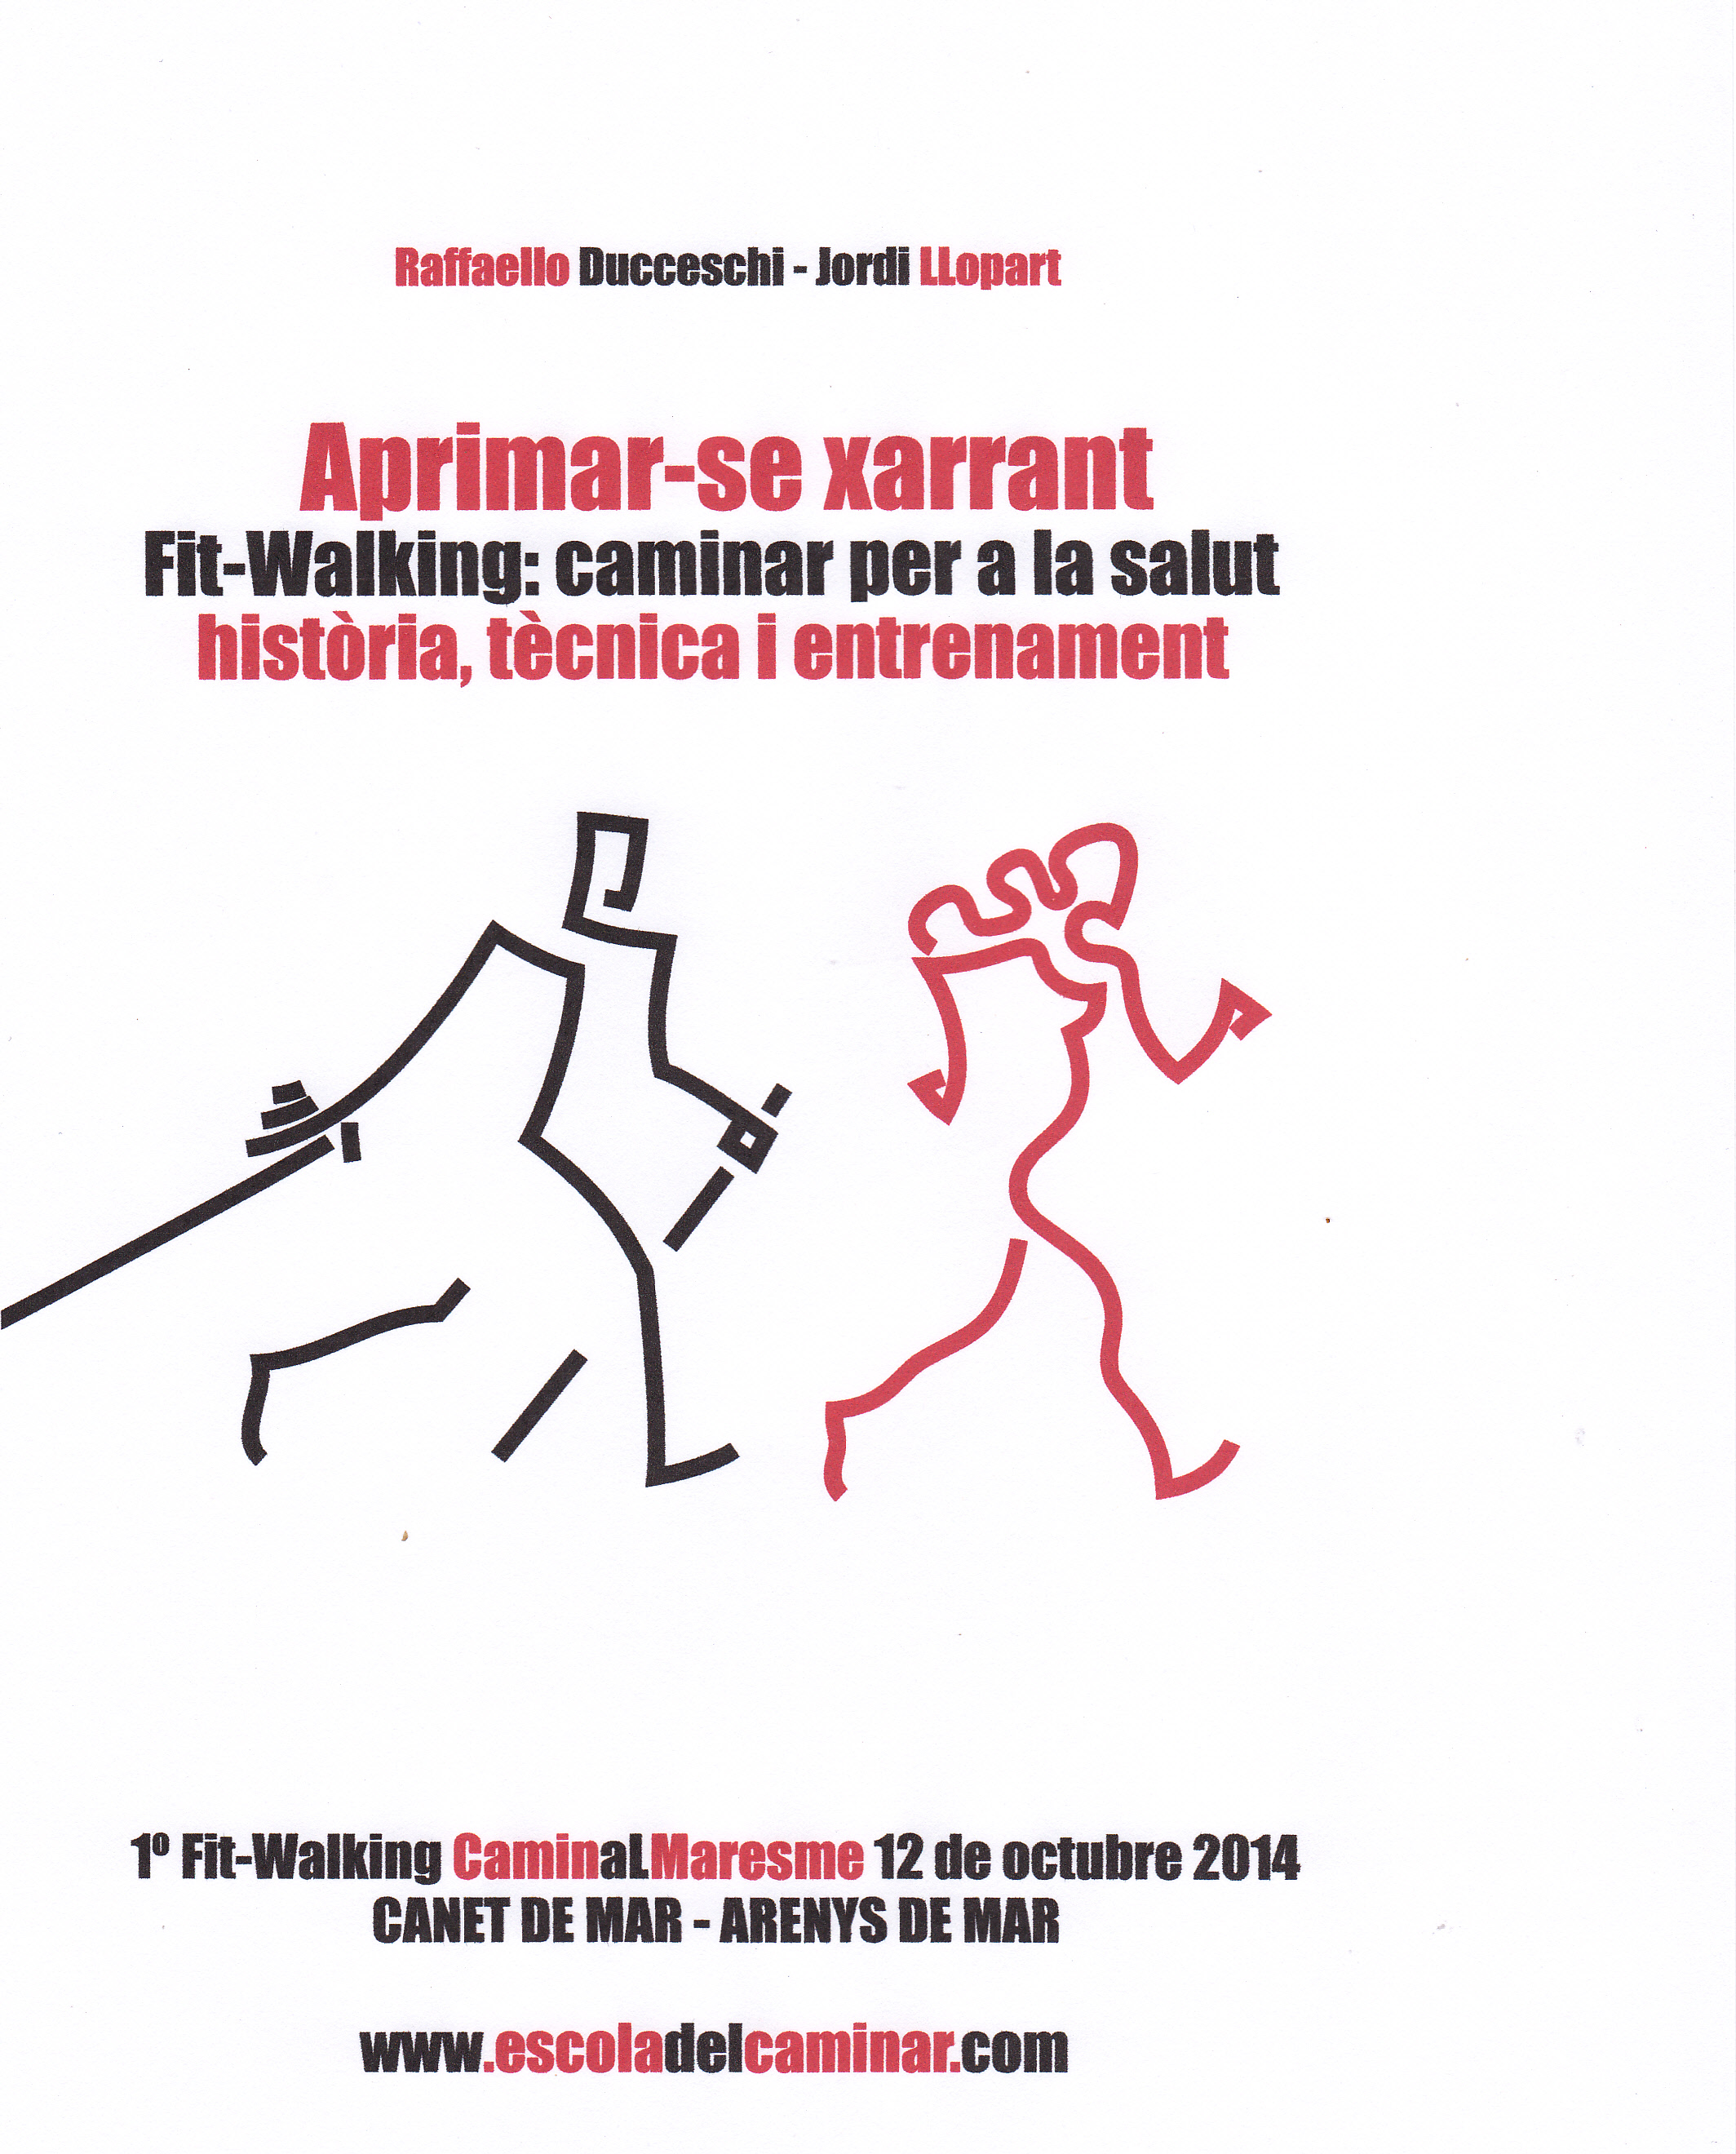 Fit-Walking entre Canet de Mar y Arenys de Mar